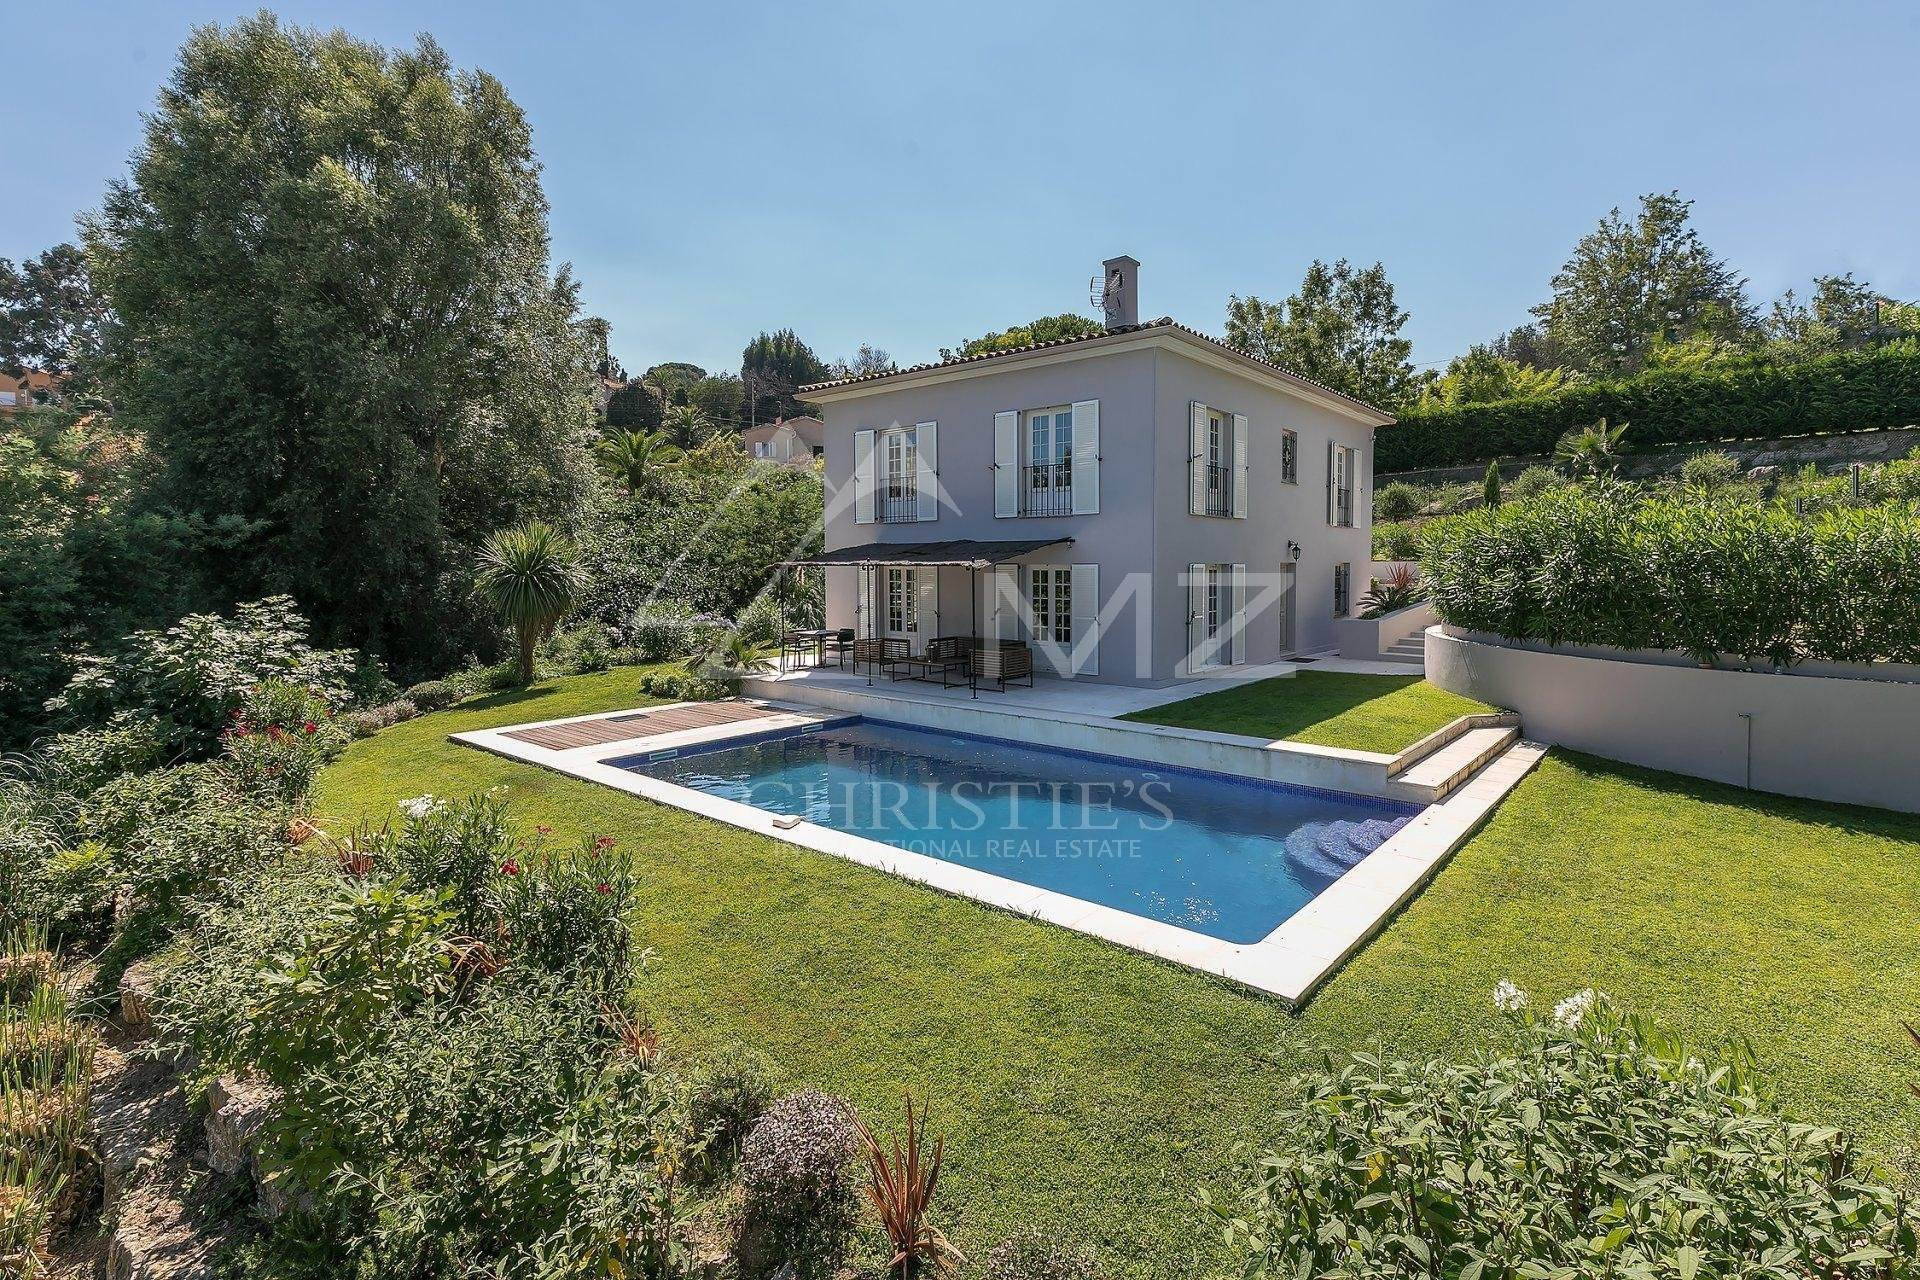 Villa/Townhouse for Sale at Cannes - Super Cannes - Newly built villa Vallauris, Alpes-Maritimes,06220 France